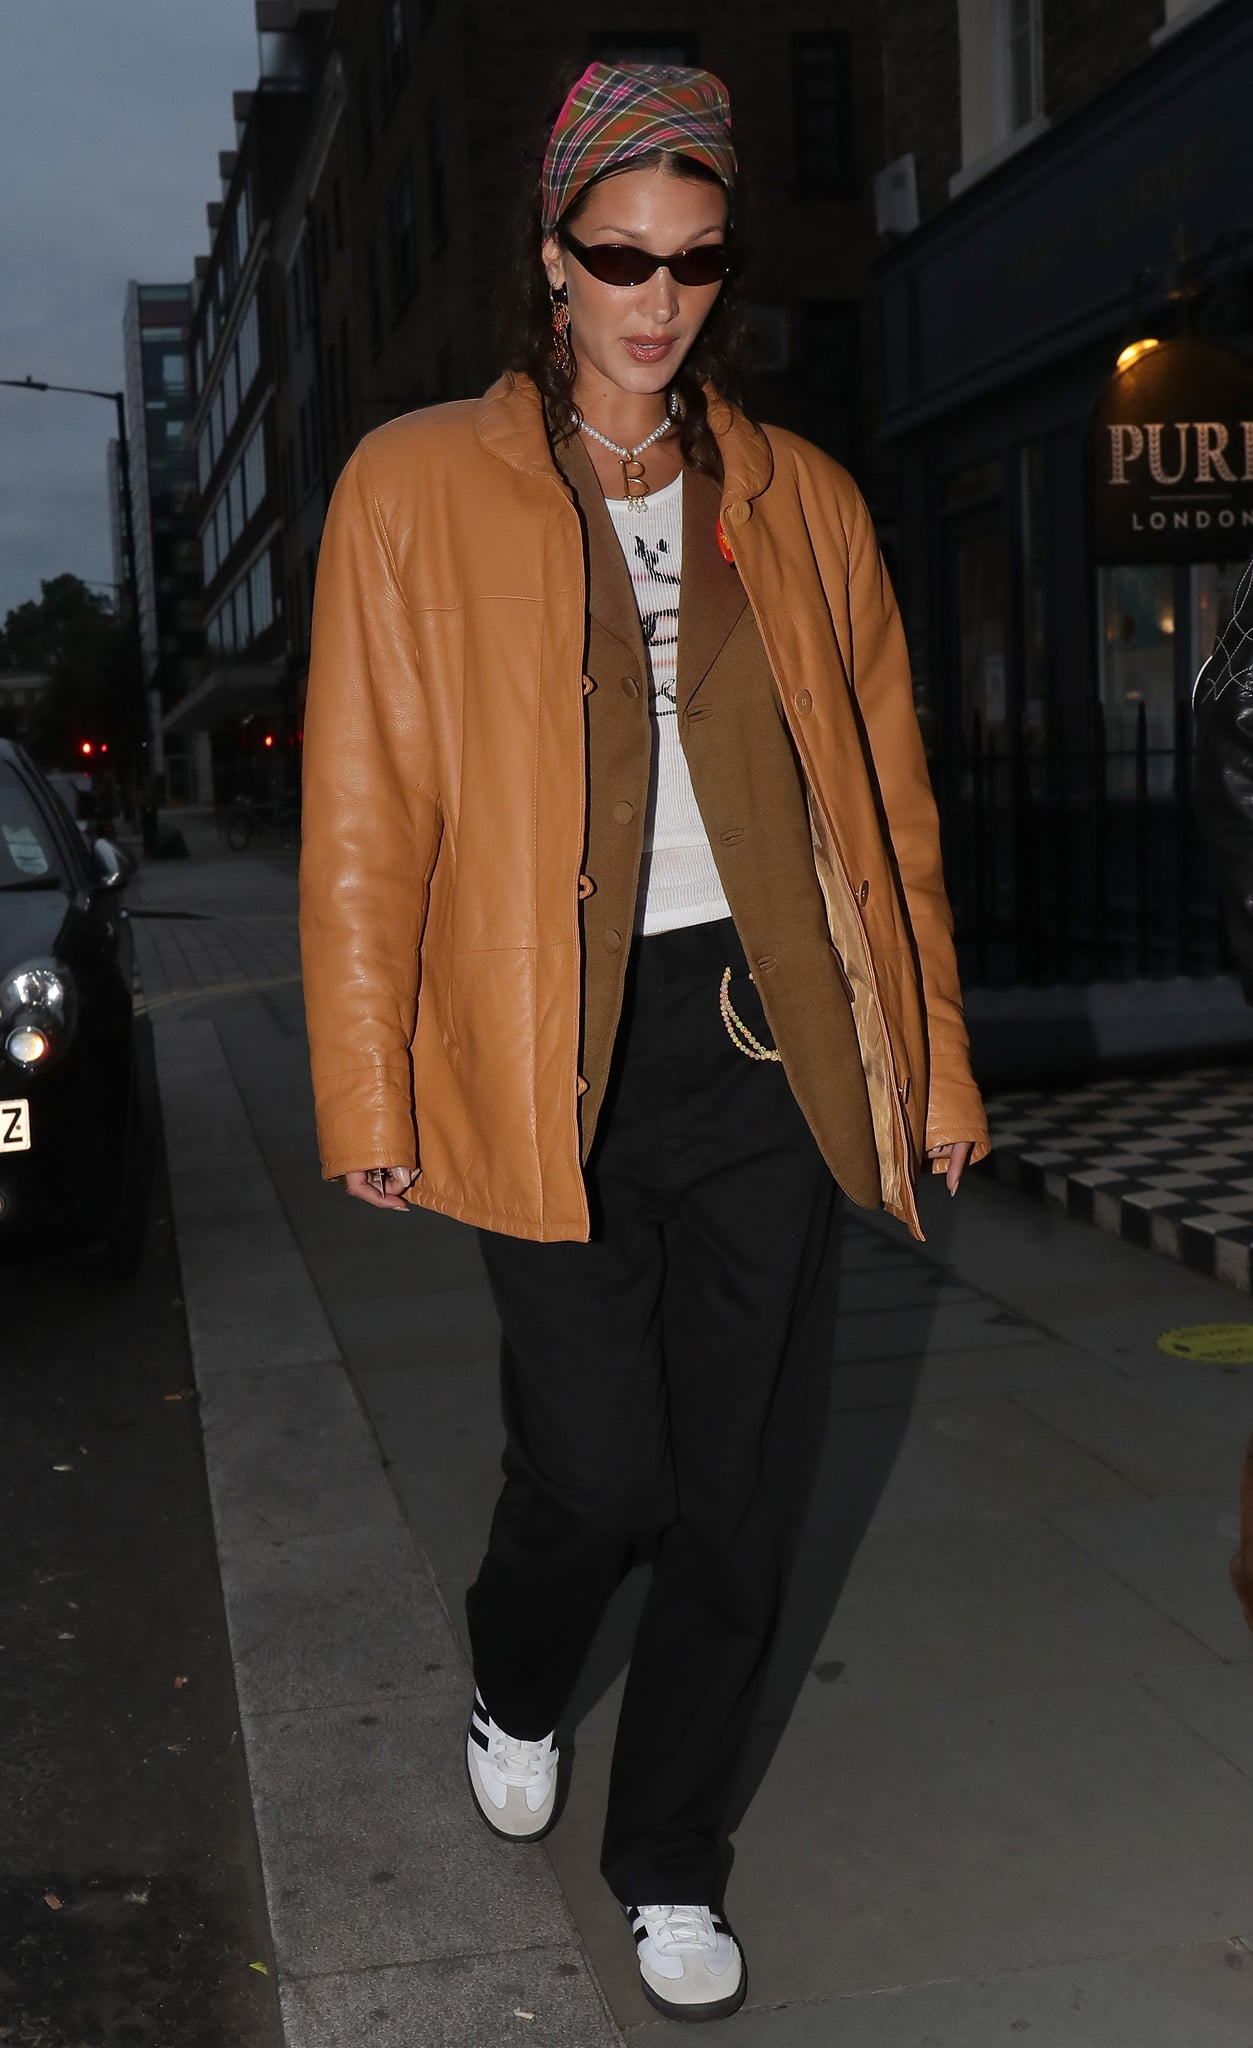 Bella Hadid bundles up in a mustard leather jacket and a brown blazer layered over a white tee and black pants